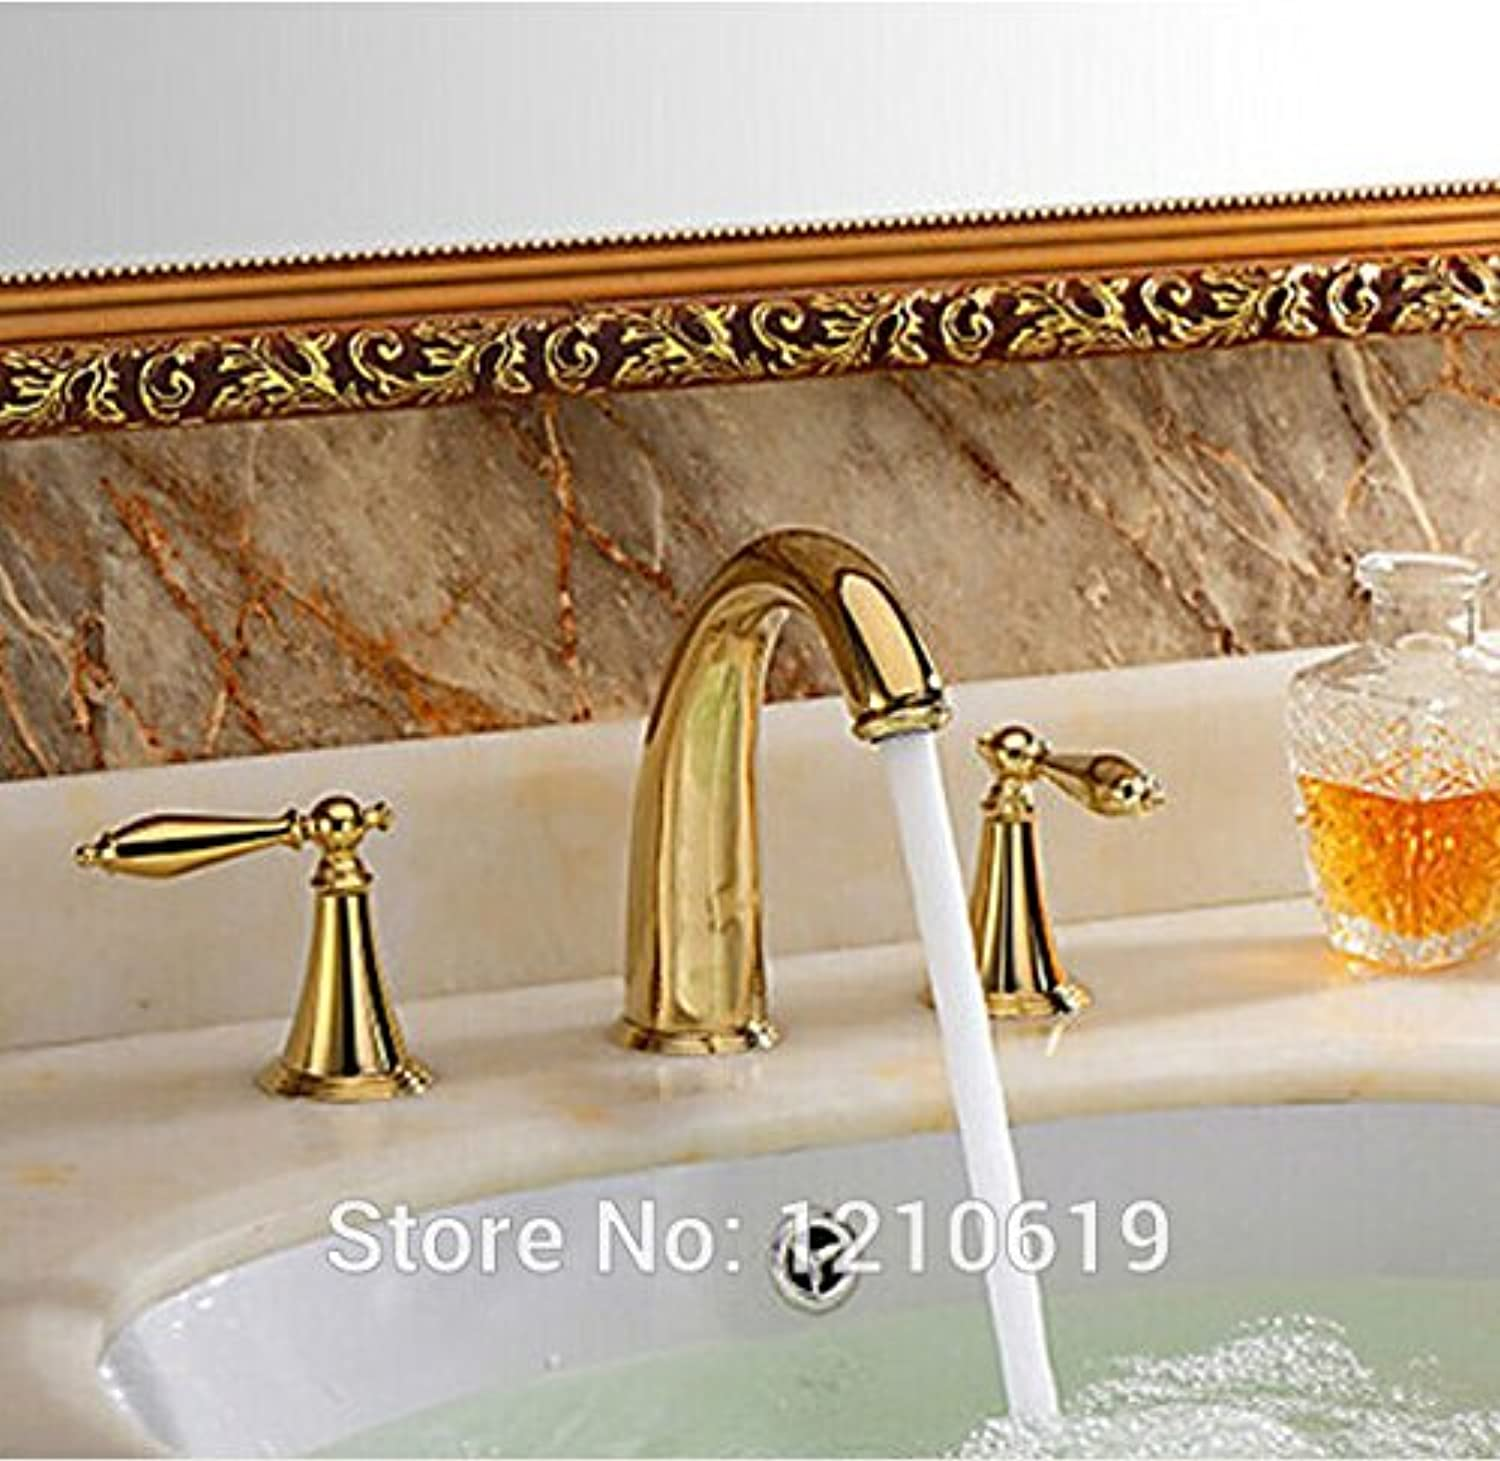 Maifeini Modern Luxury gold Poland Bathroom Vanity Pool Tap Tap Tap Dual Handles Deck